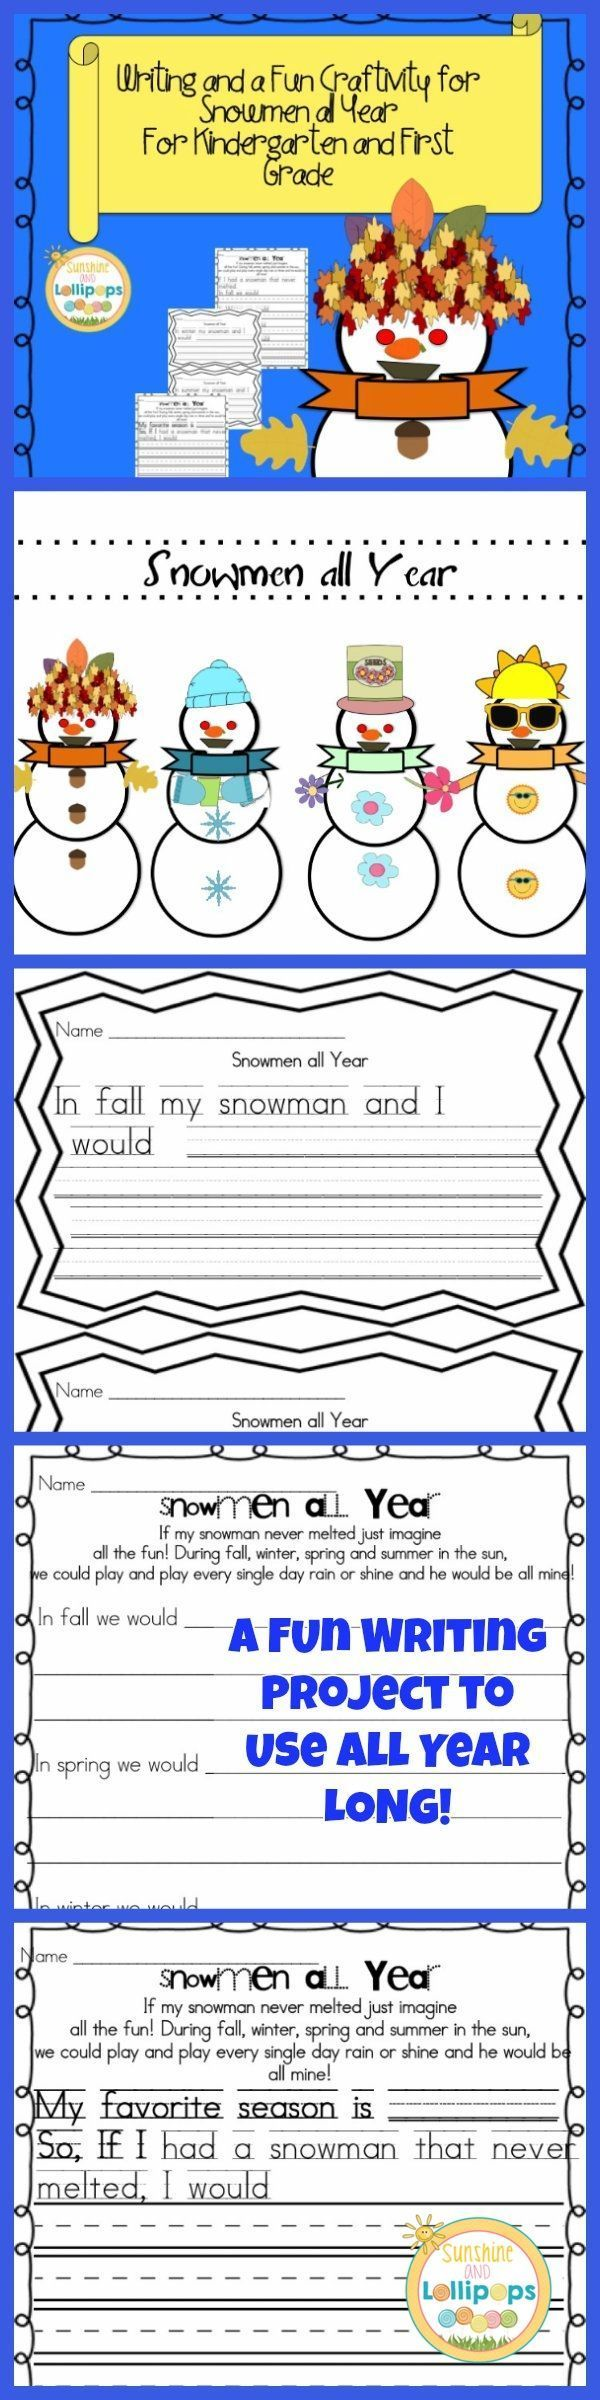 Snowmen all year writing a letter